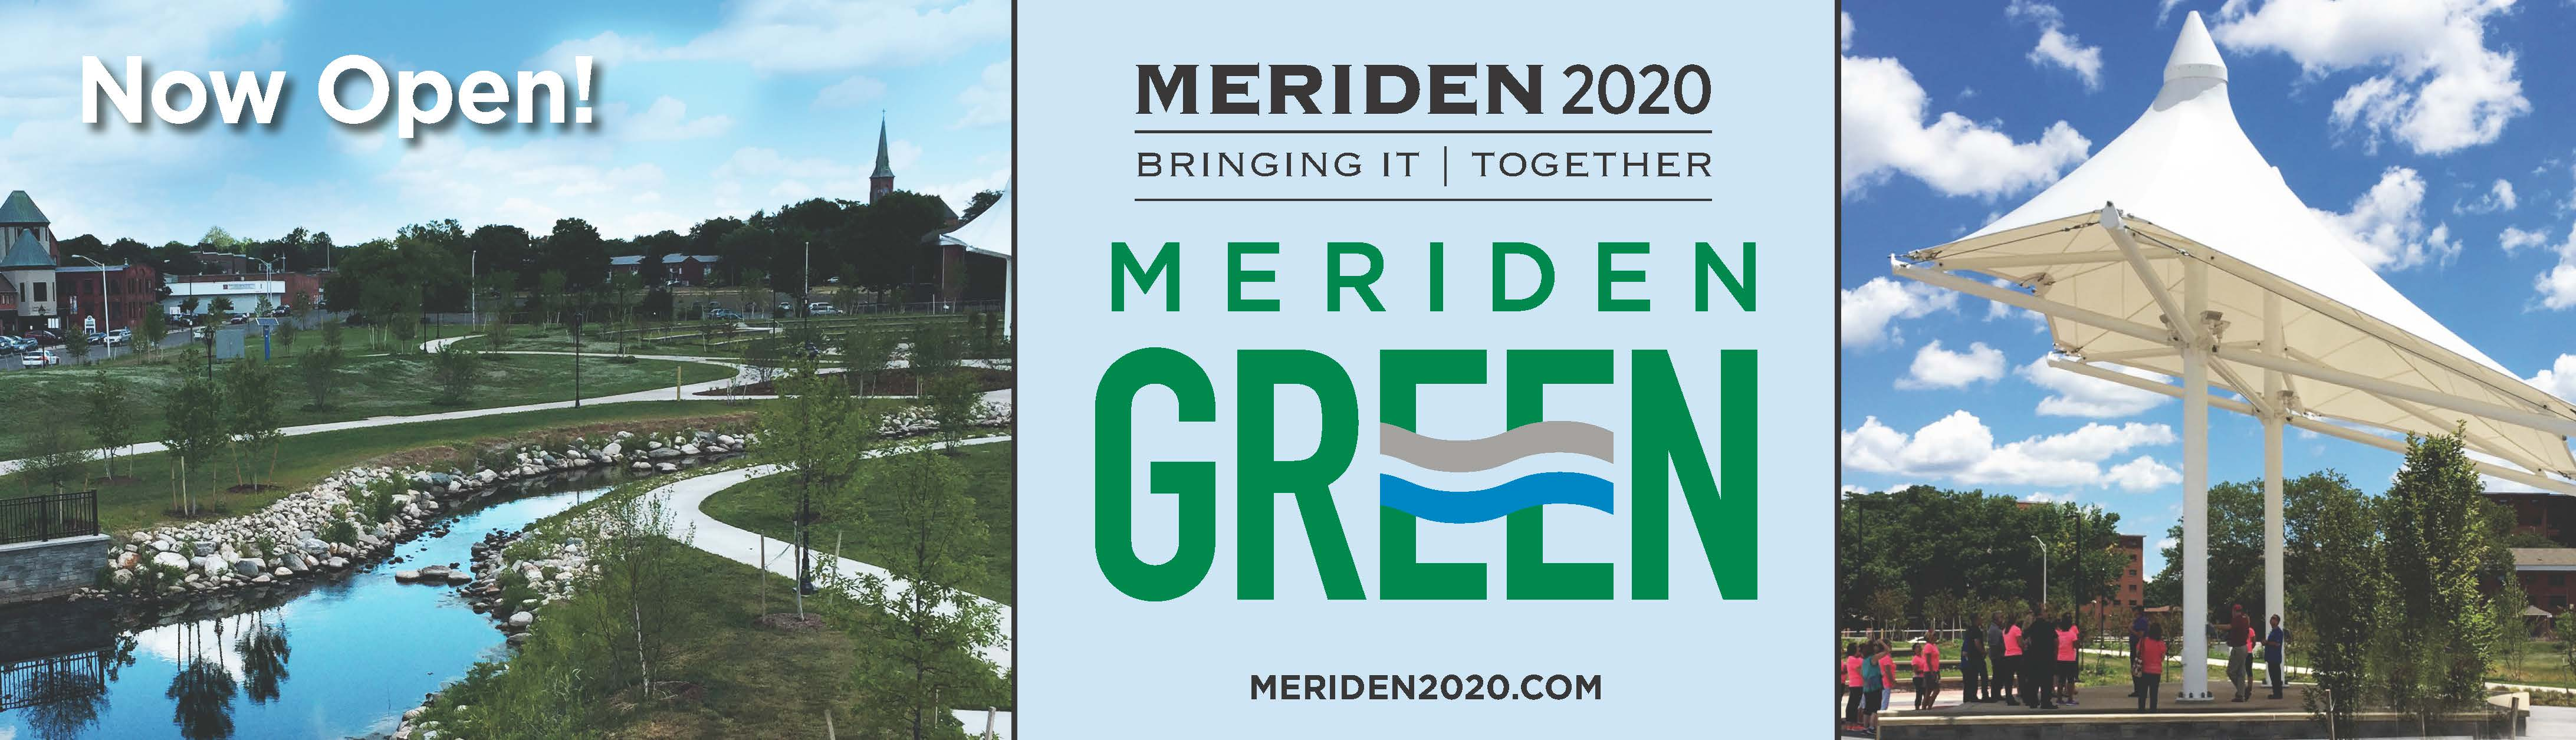 Special events at the Meriden Green are posted on the community events  calendar. All events are free and open to the public unless noted.